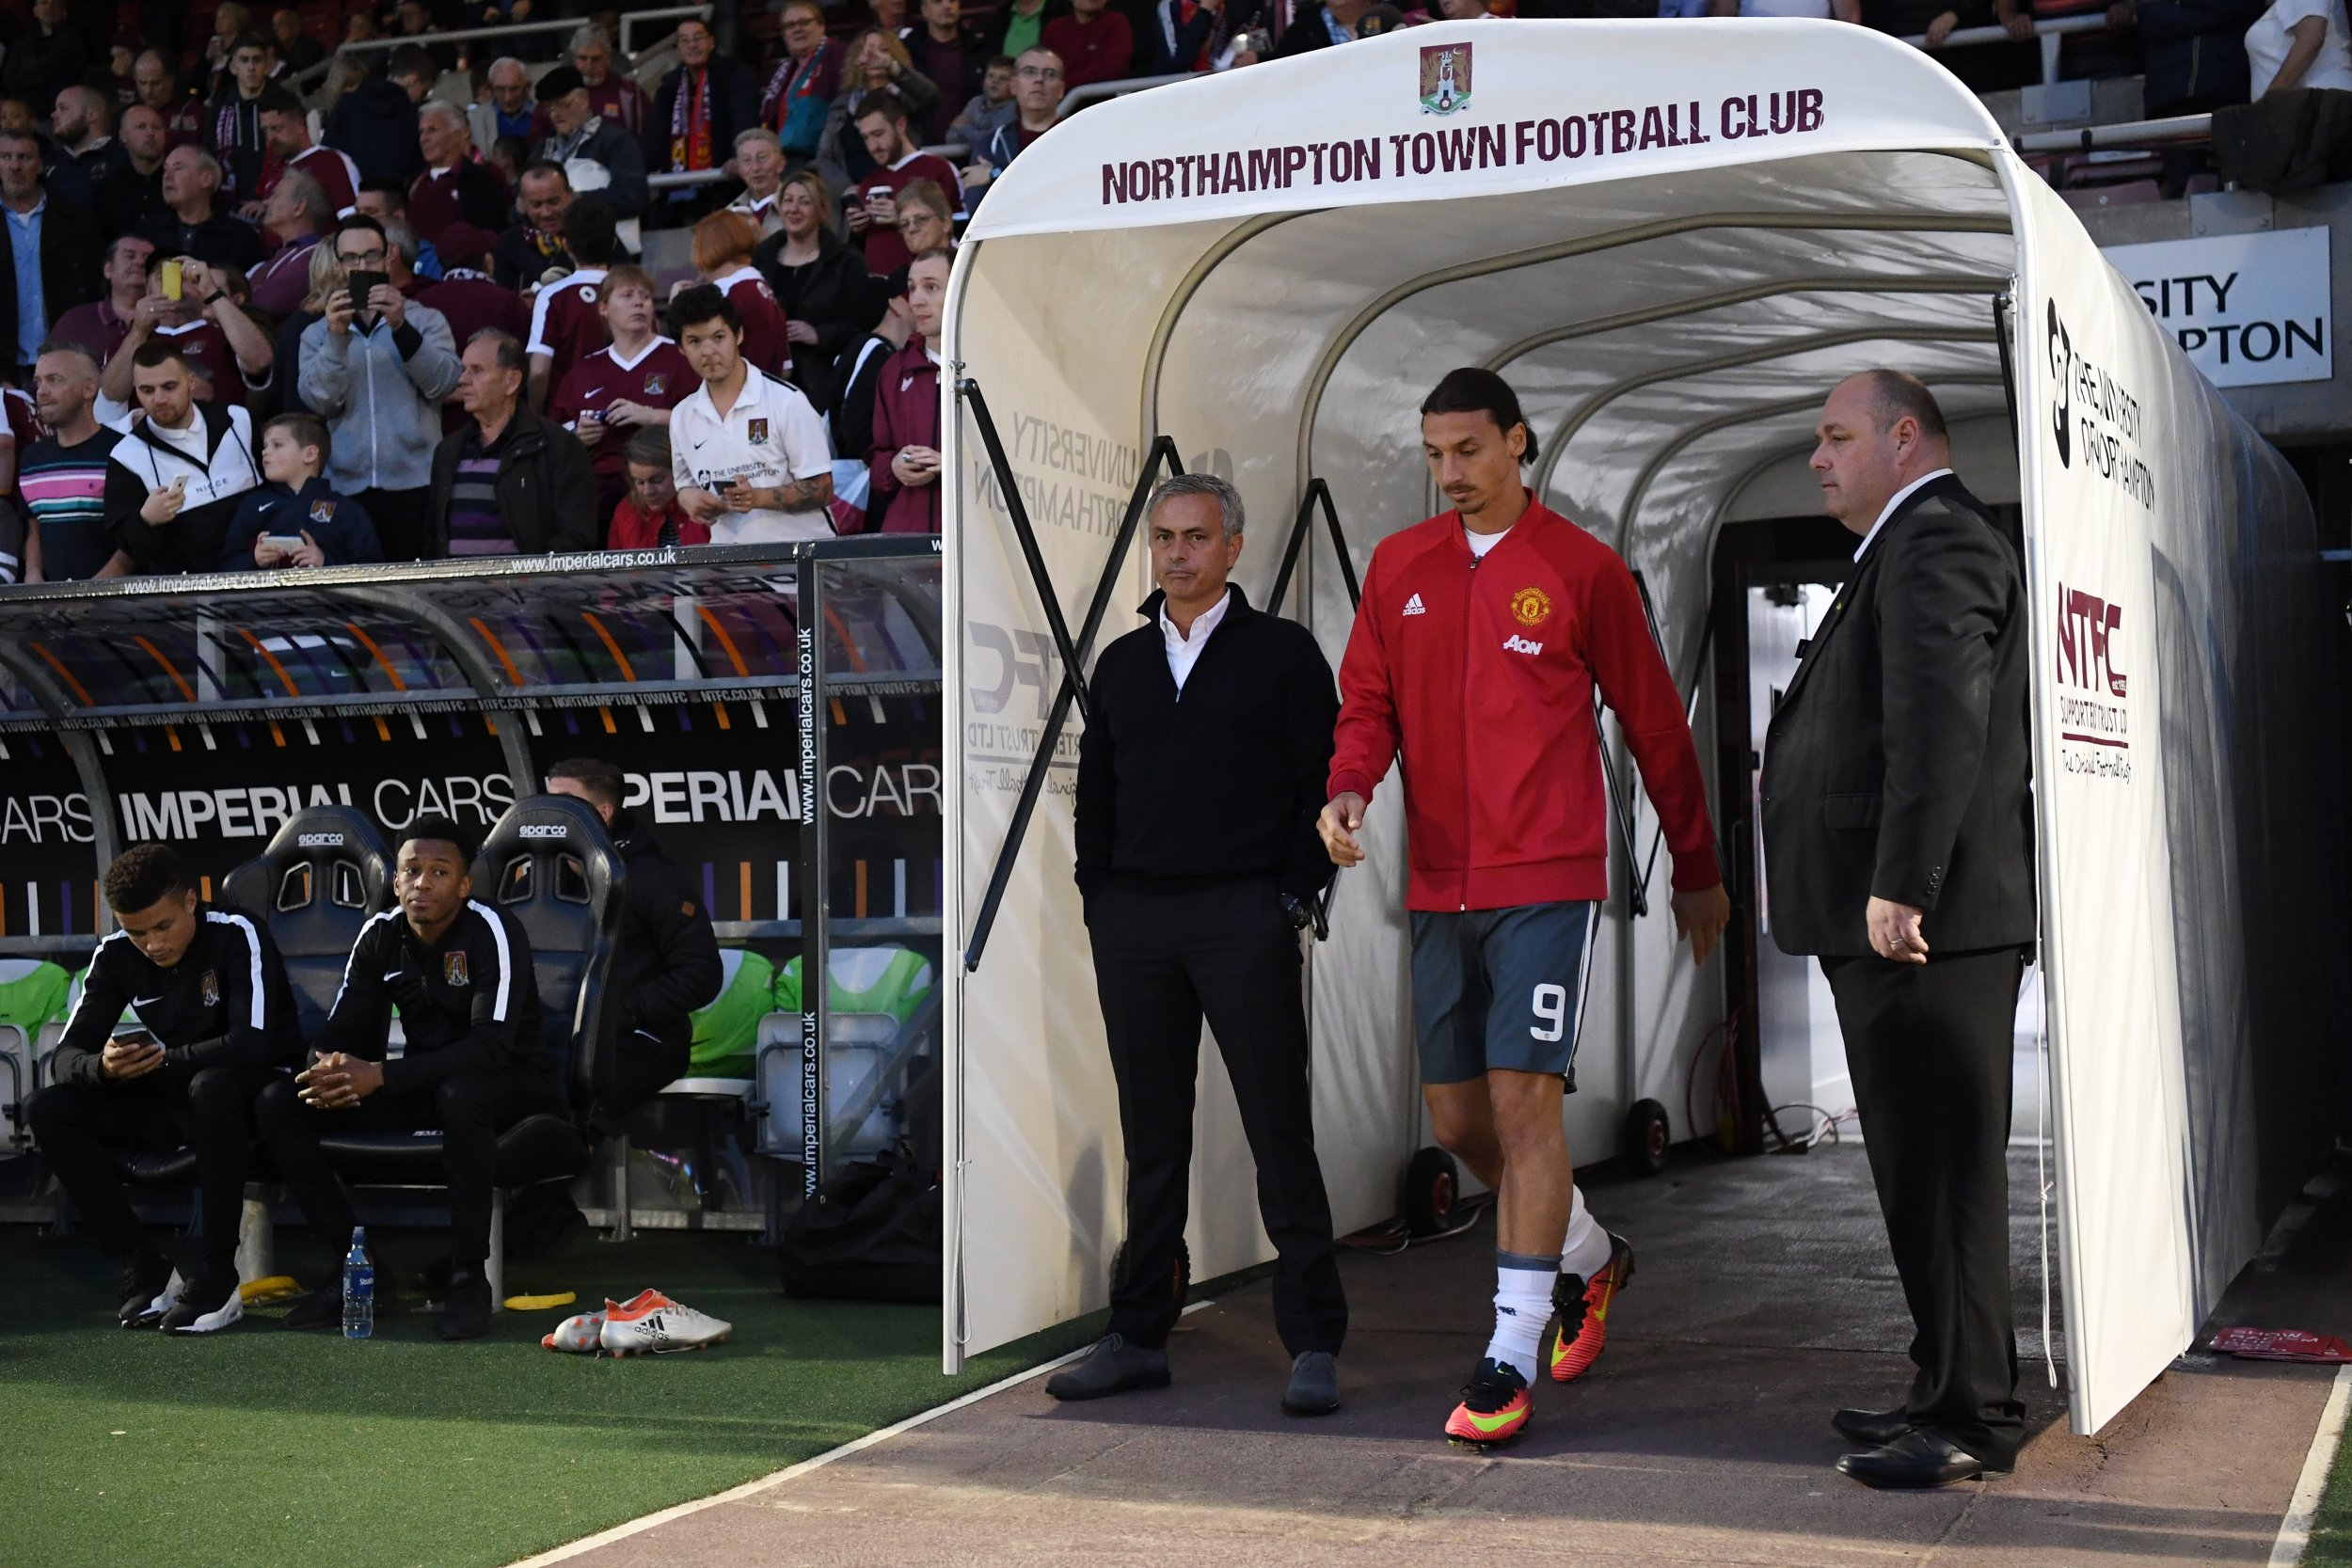 Mourinho and Ibrahimovic